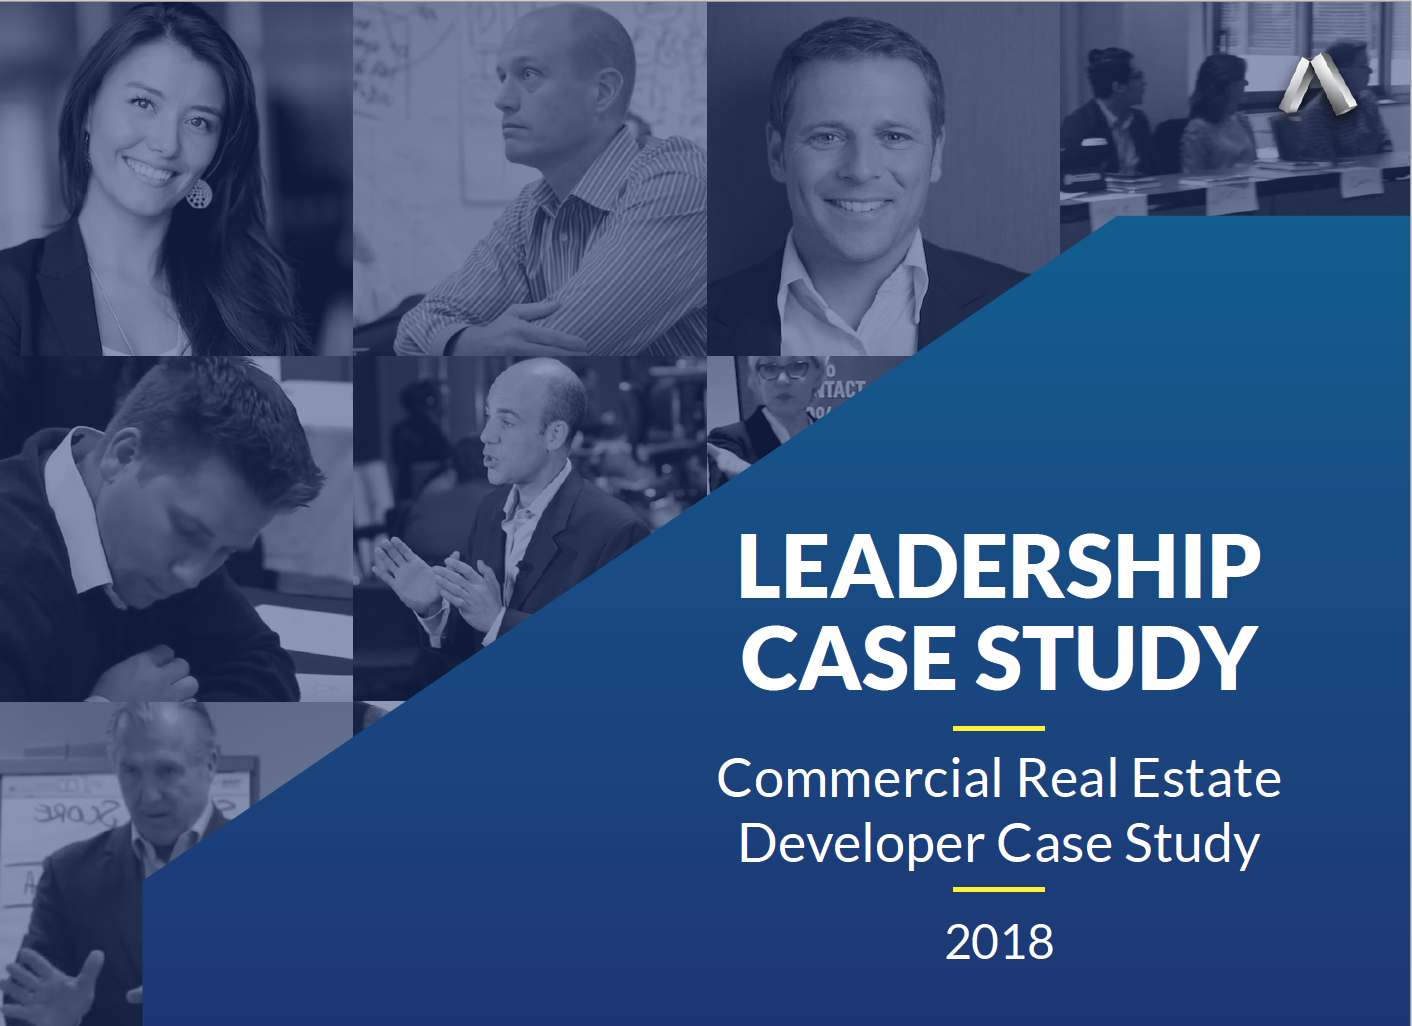 dialexis ebook roi case study 2017 commercial real estate